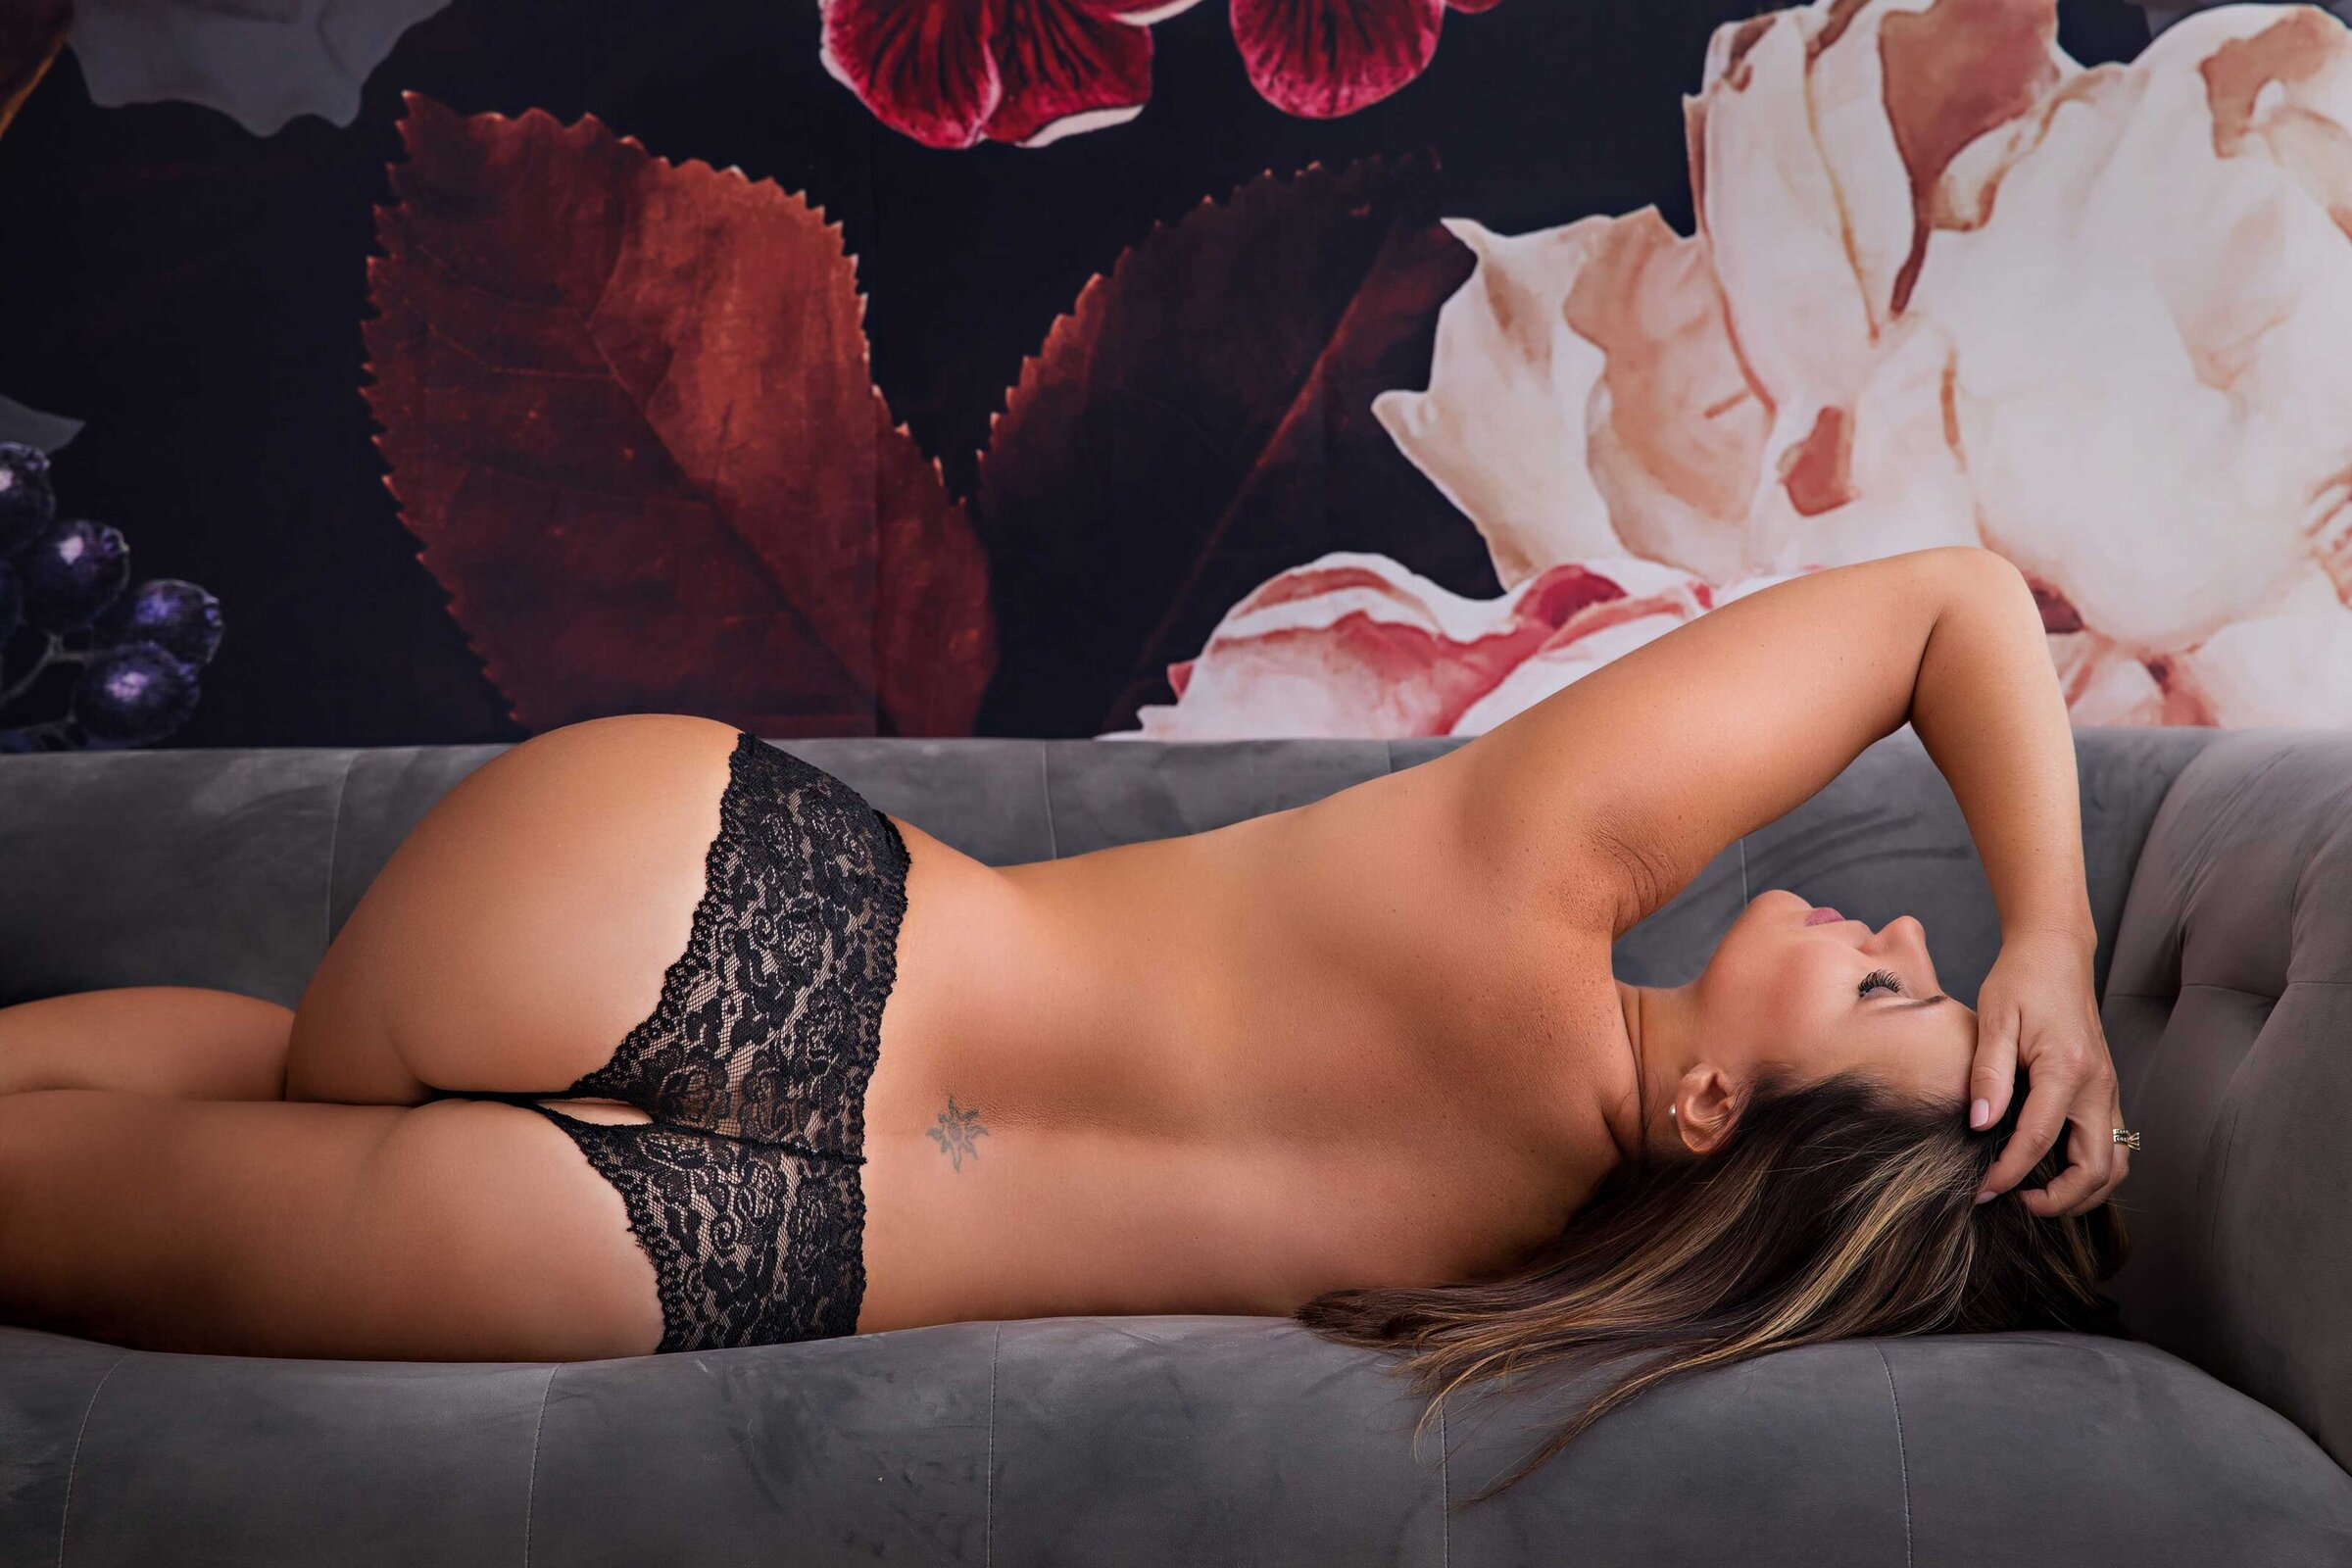 black lace panties on woman laying on couch